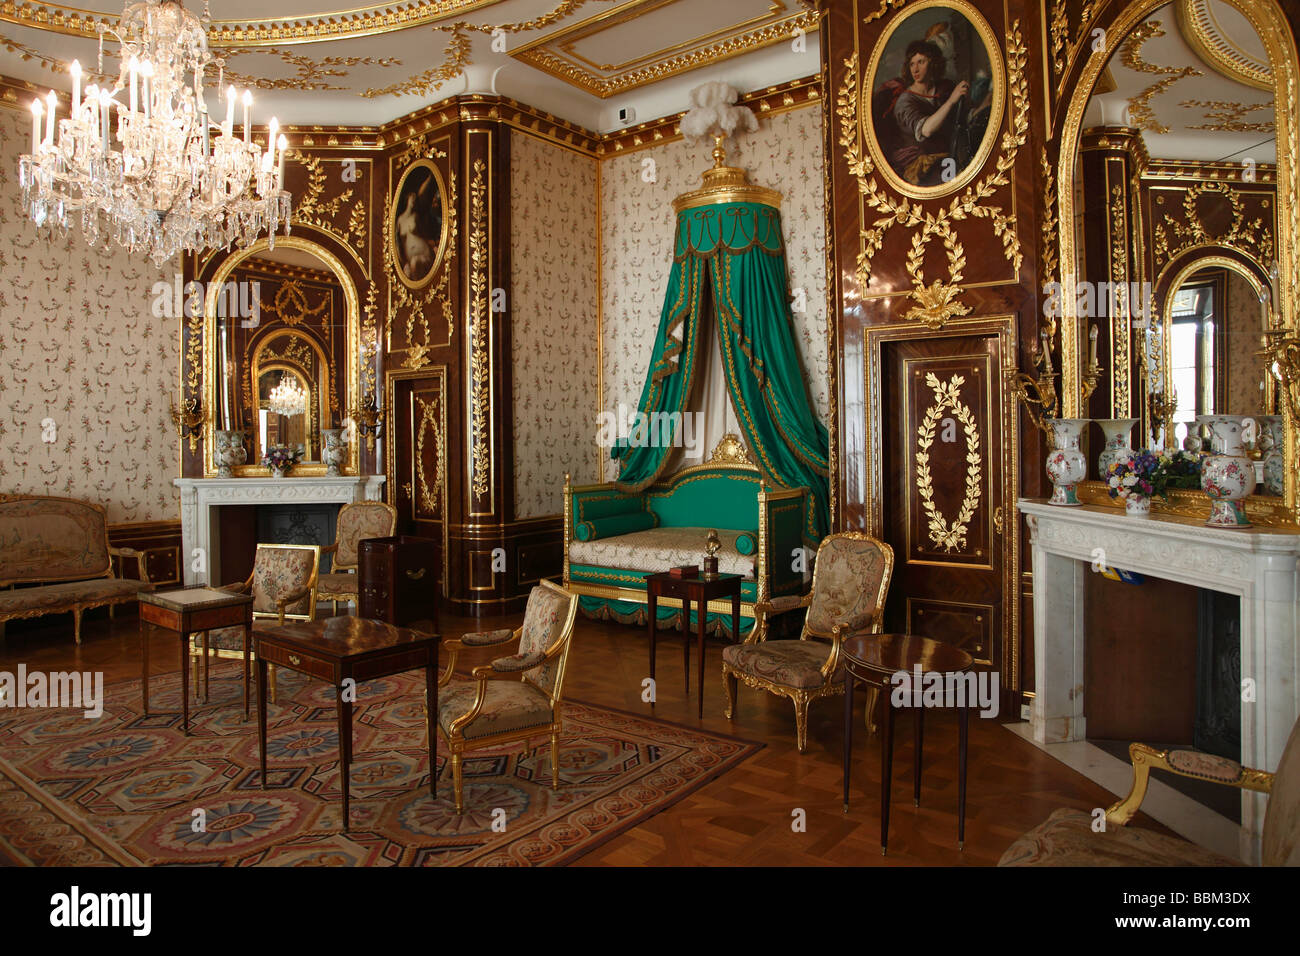 castle interior stock photos & castle interior stock images - alamy